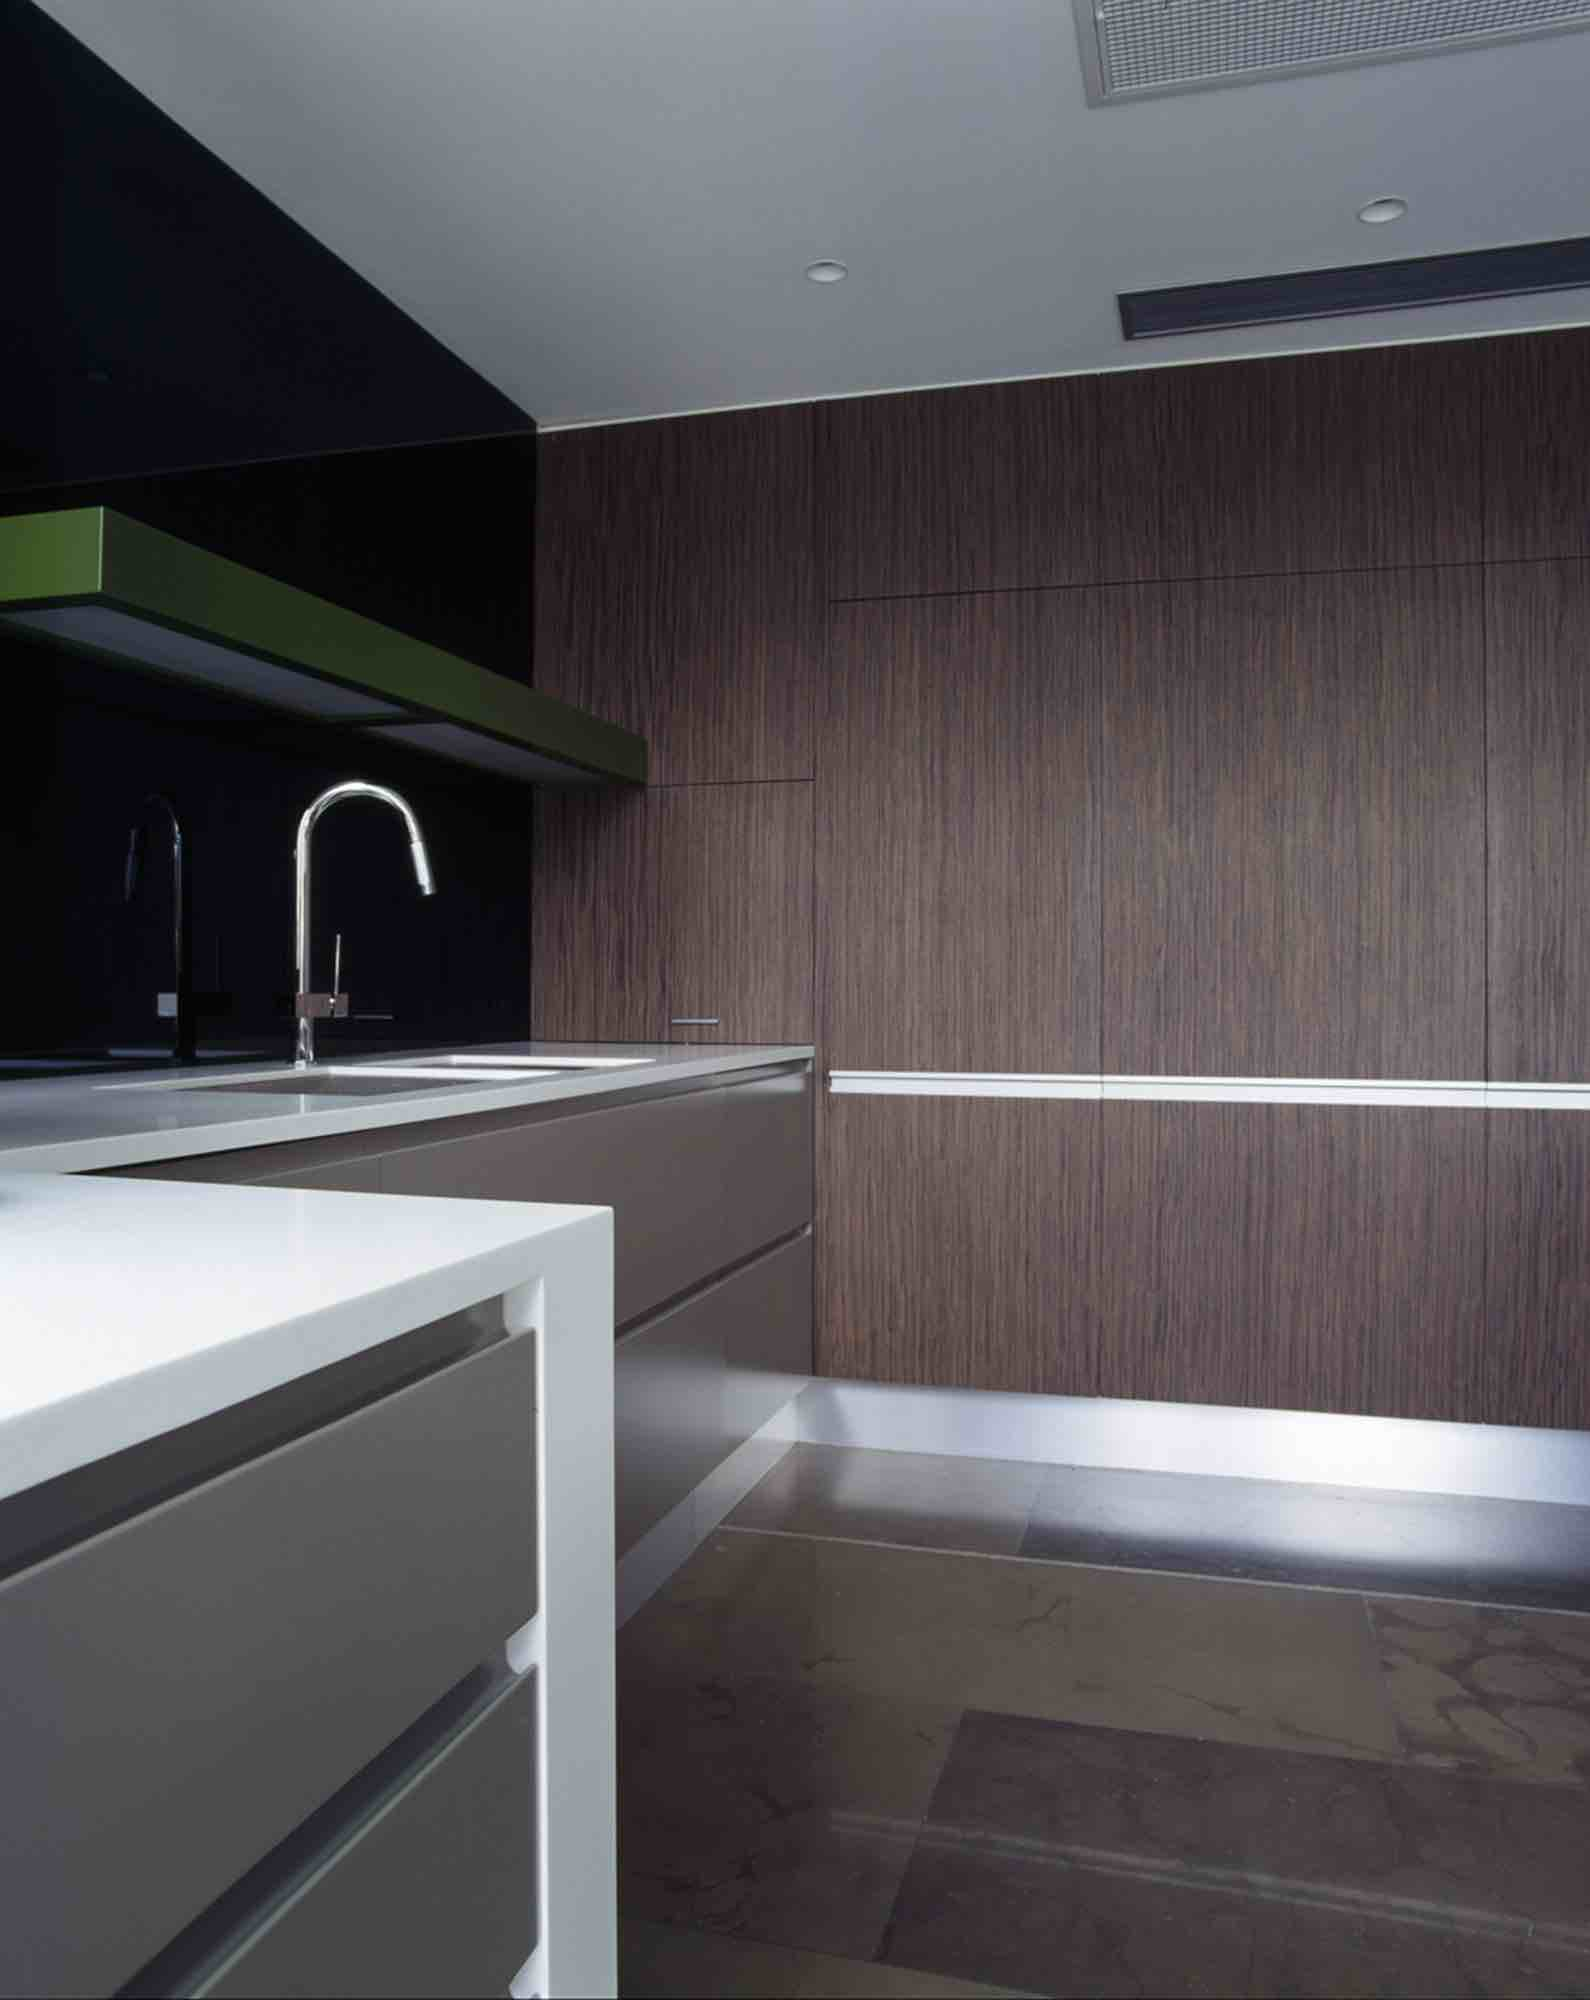 minosa-design-open-plan-high-ceiling-void-large-dinning-table-corian-benchtop-minosa-kitchen-gilda-mirror-splashback-04